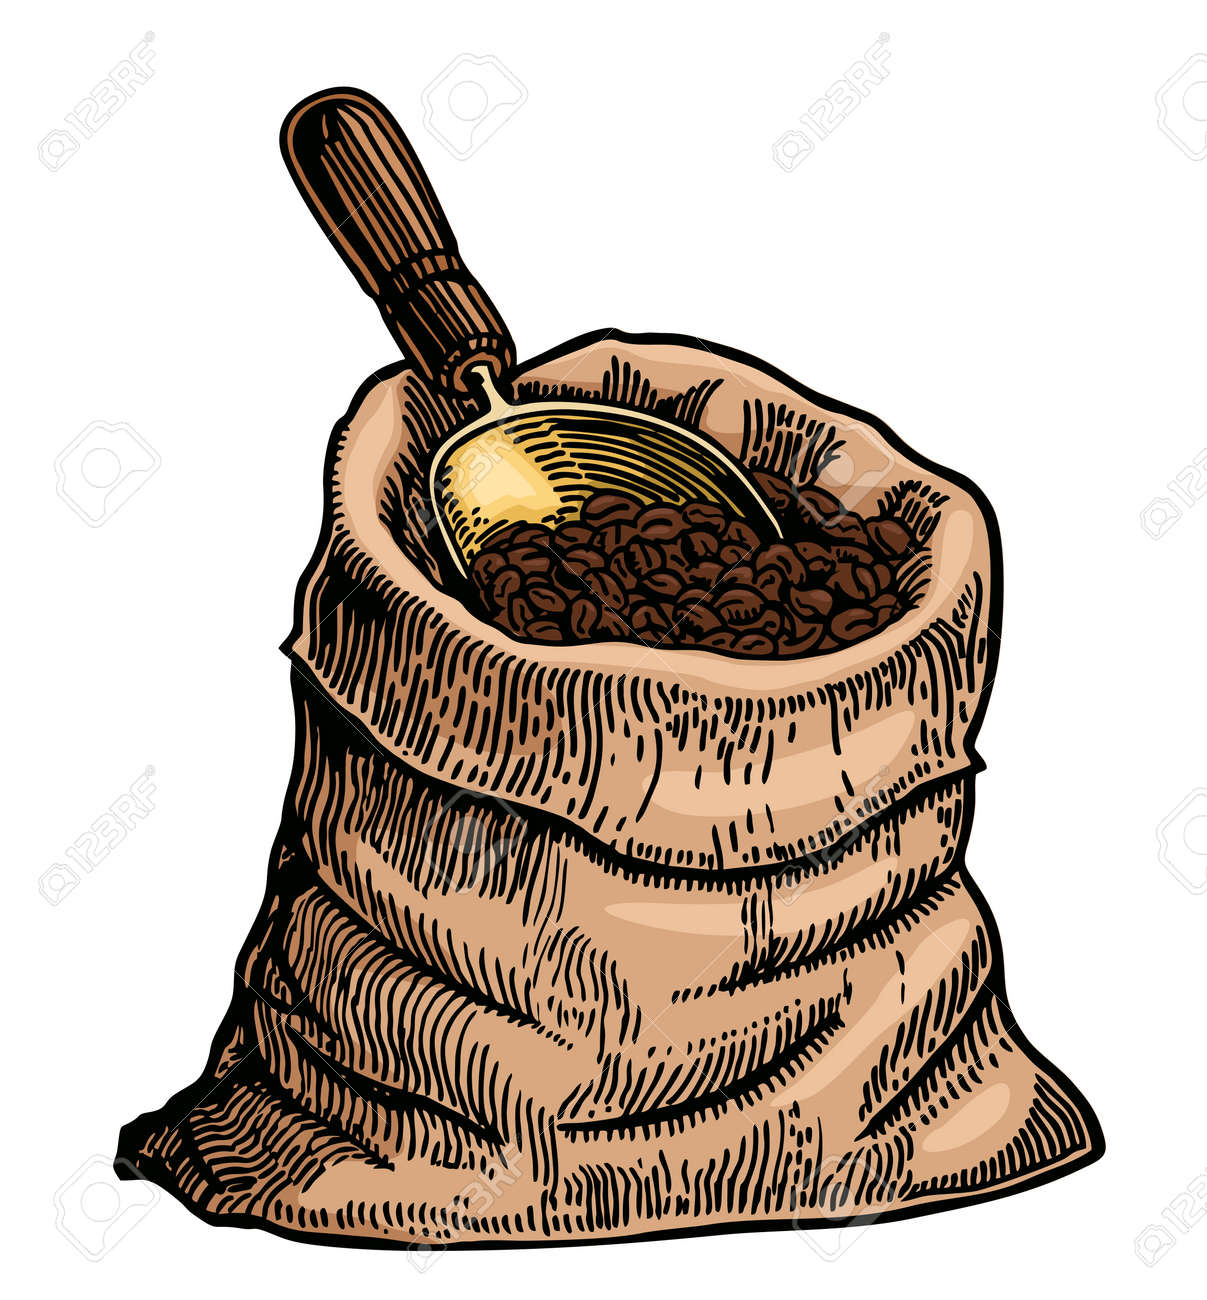 Coffee beans in a bag free hand color drawing vector image Sack of coffee beans with a scoop - 169743709